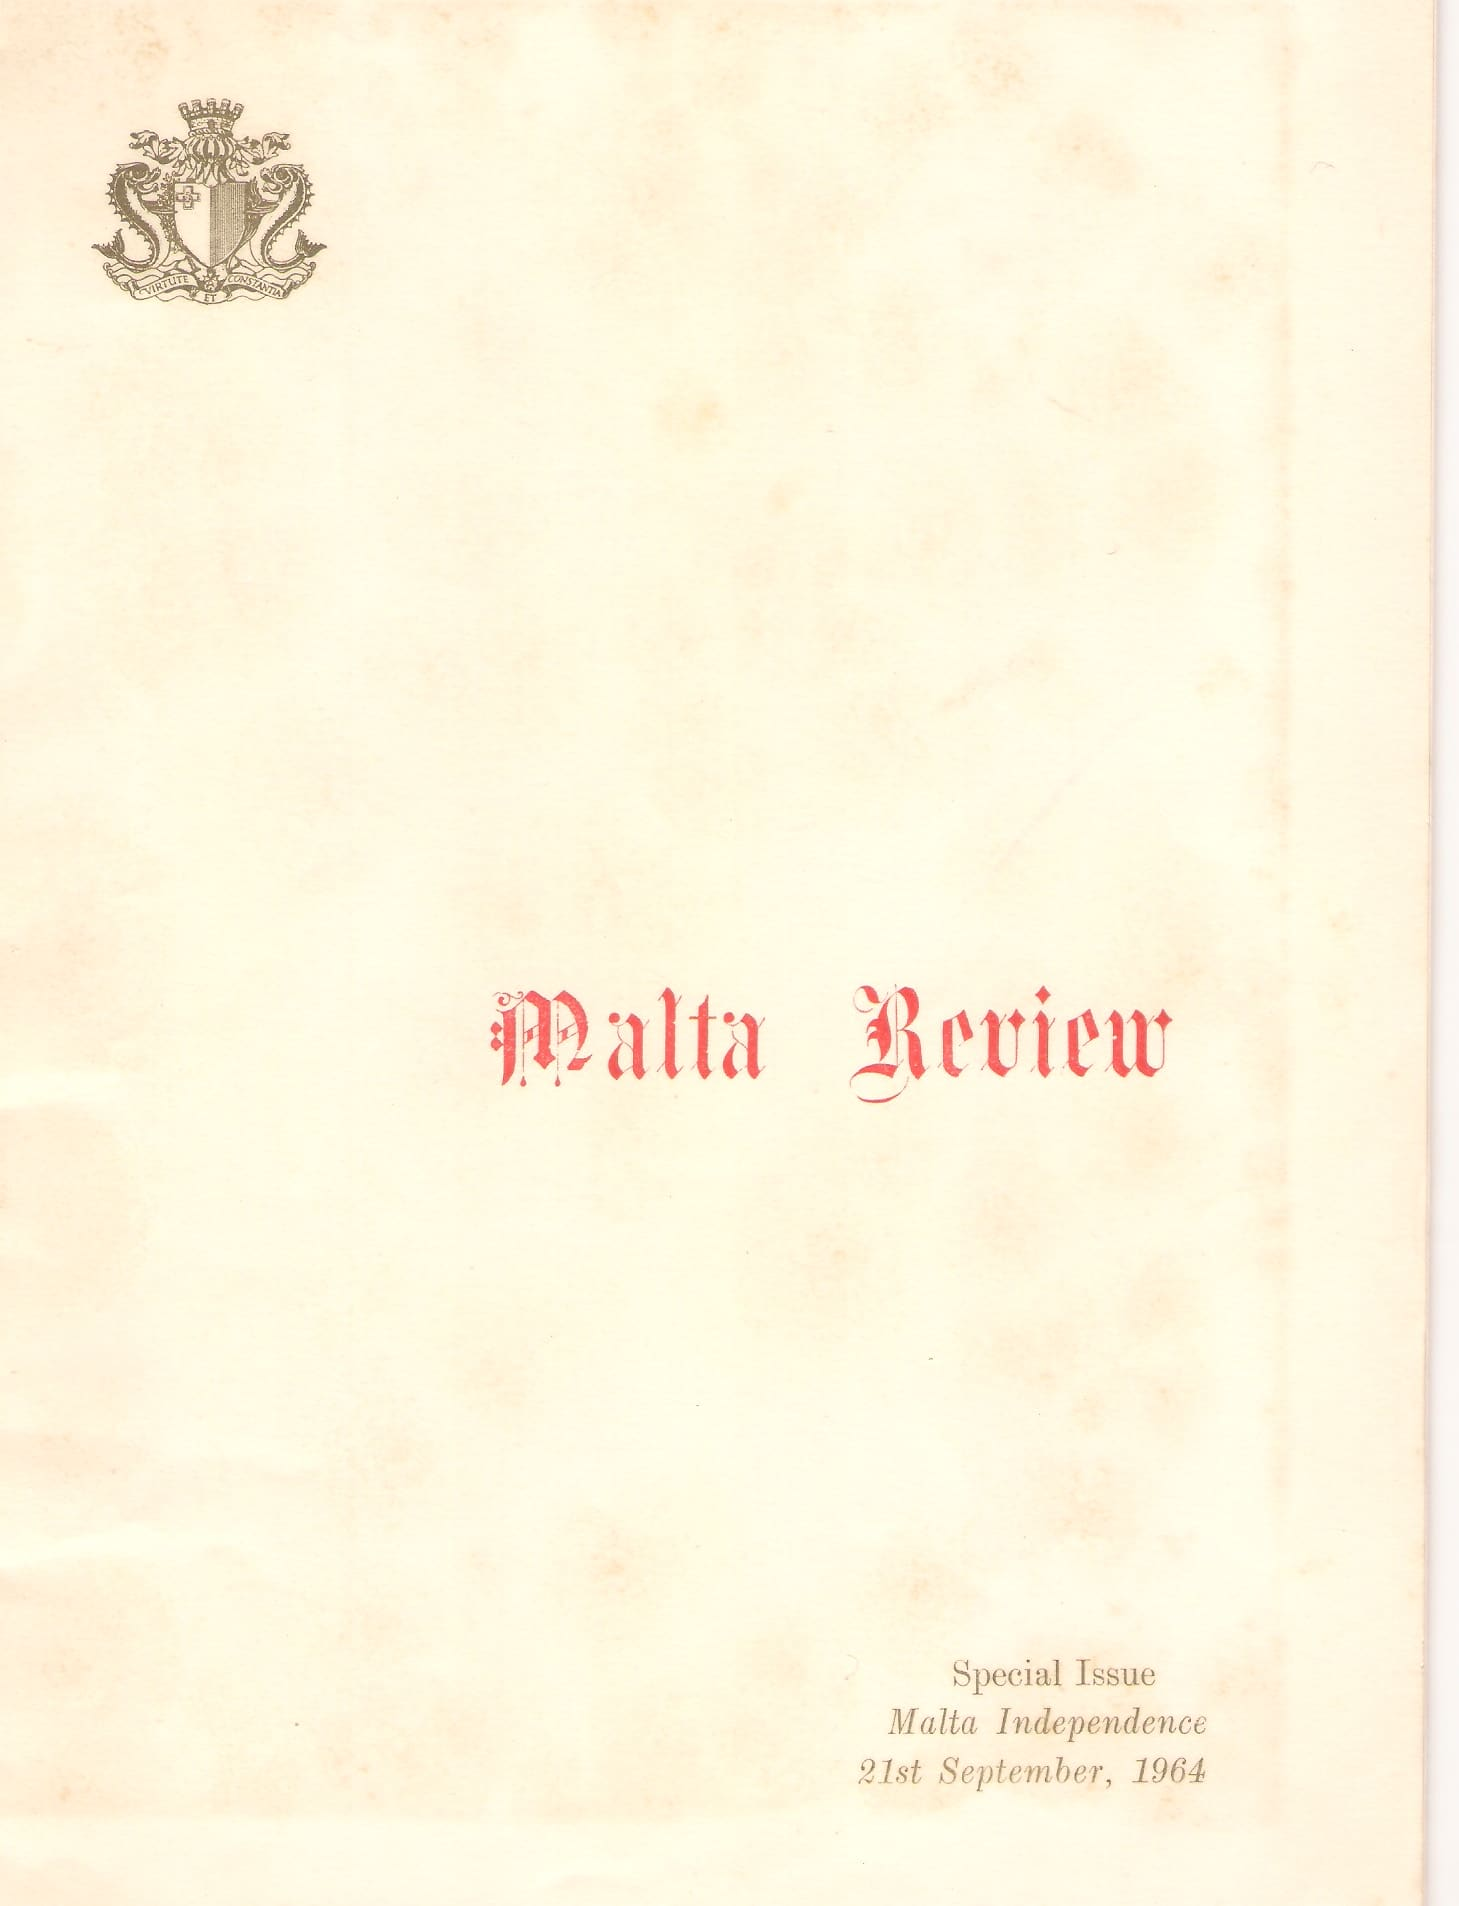 a review of the independence constitution of malta of 1964 Malta achieved its independence as the state of malta on 21 september 1964 (independence day) after intense negotiations with the united kingdom, led by maltese prime minister george borġ olivier under its 1964 constitution, malta initially retained queen elizabeth ii as queen of malta and thus head of state , with a governor-general .